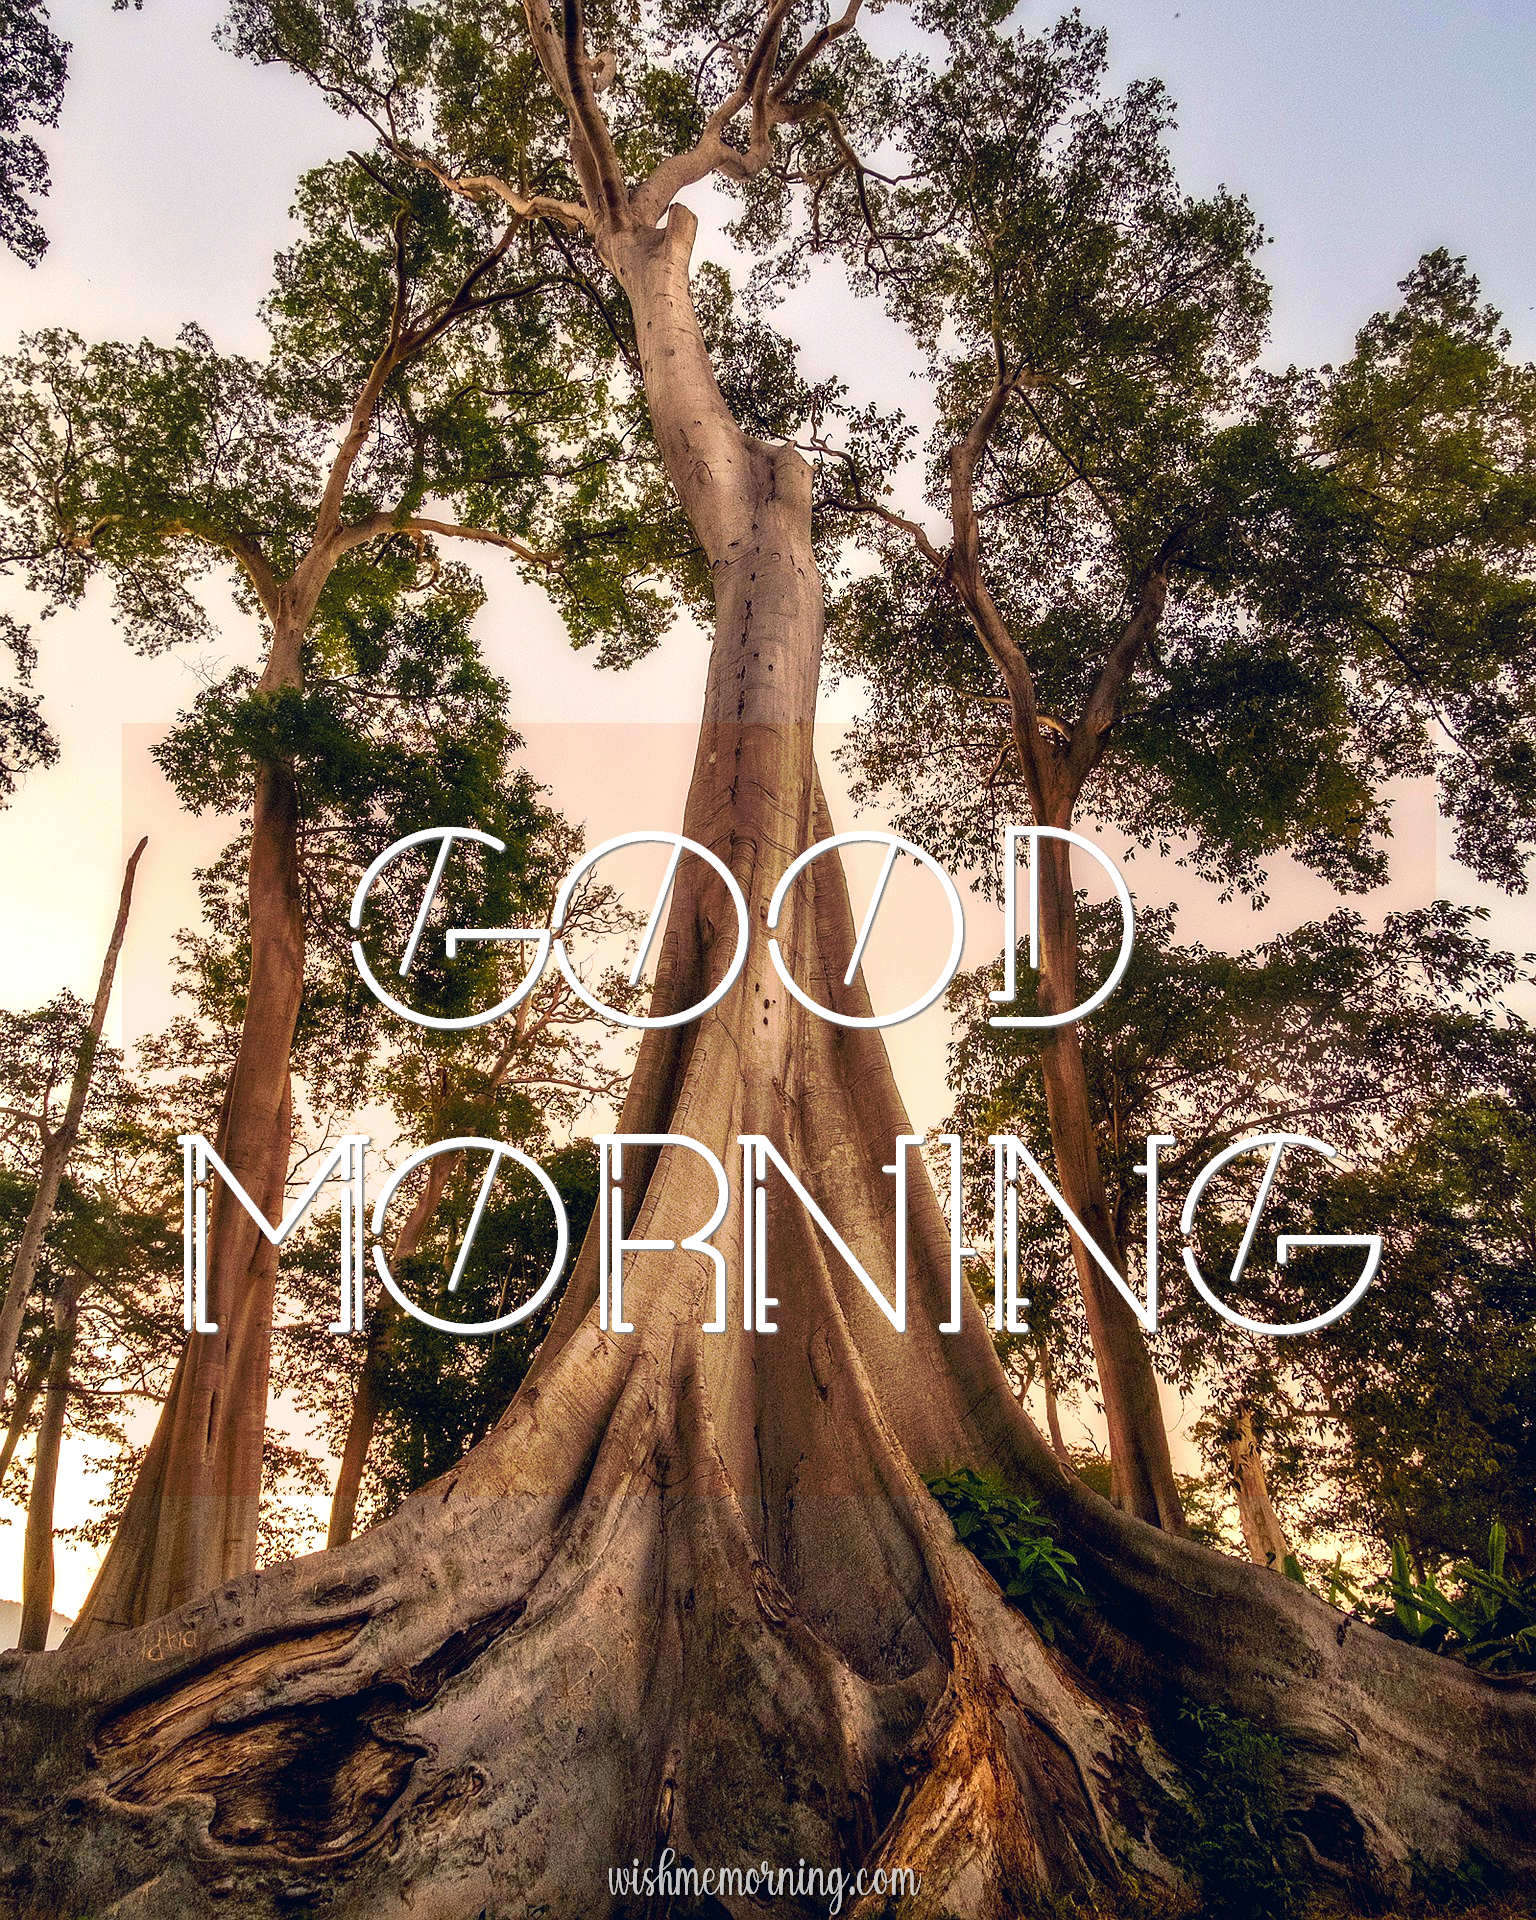 Beautiful Trees Woods Nature Images Wishes wishmemorning.com 24